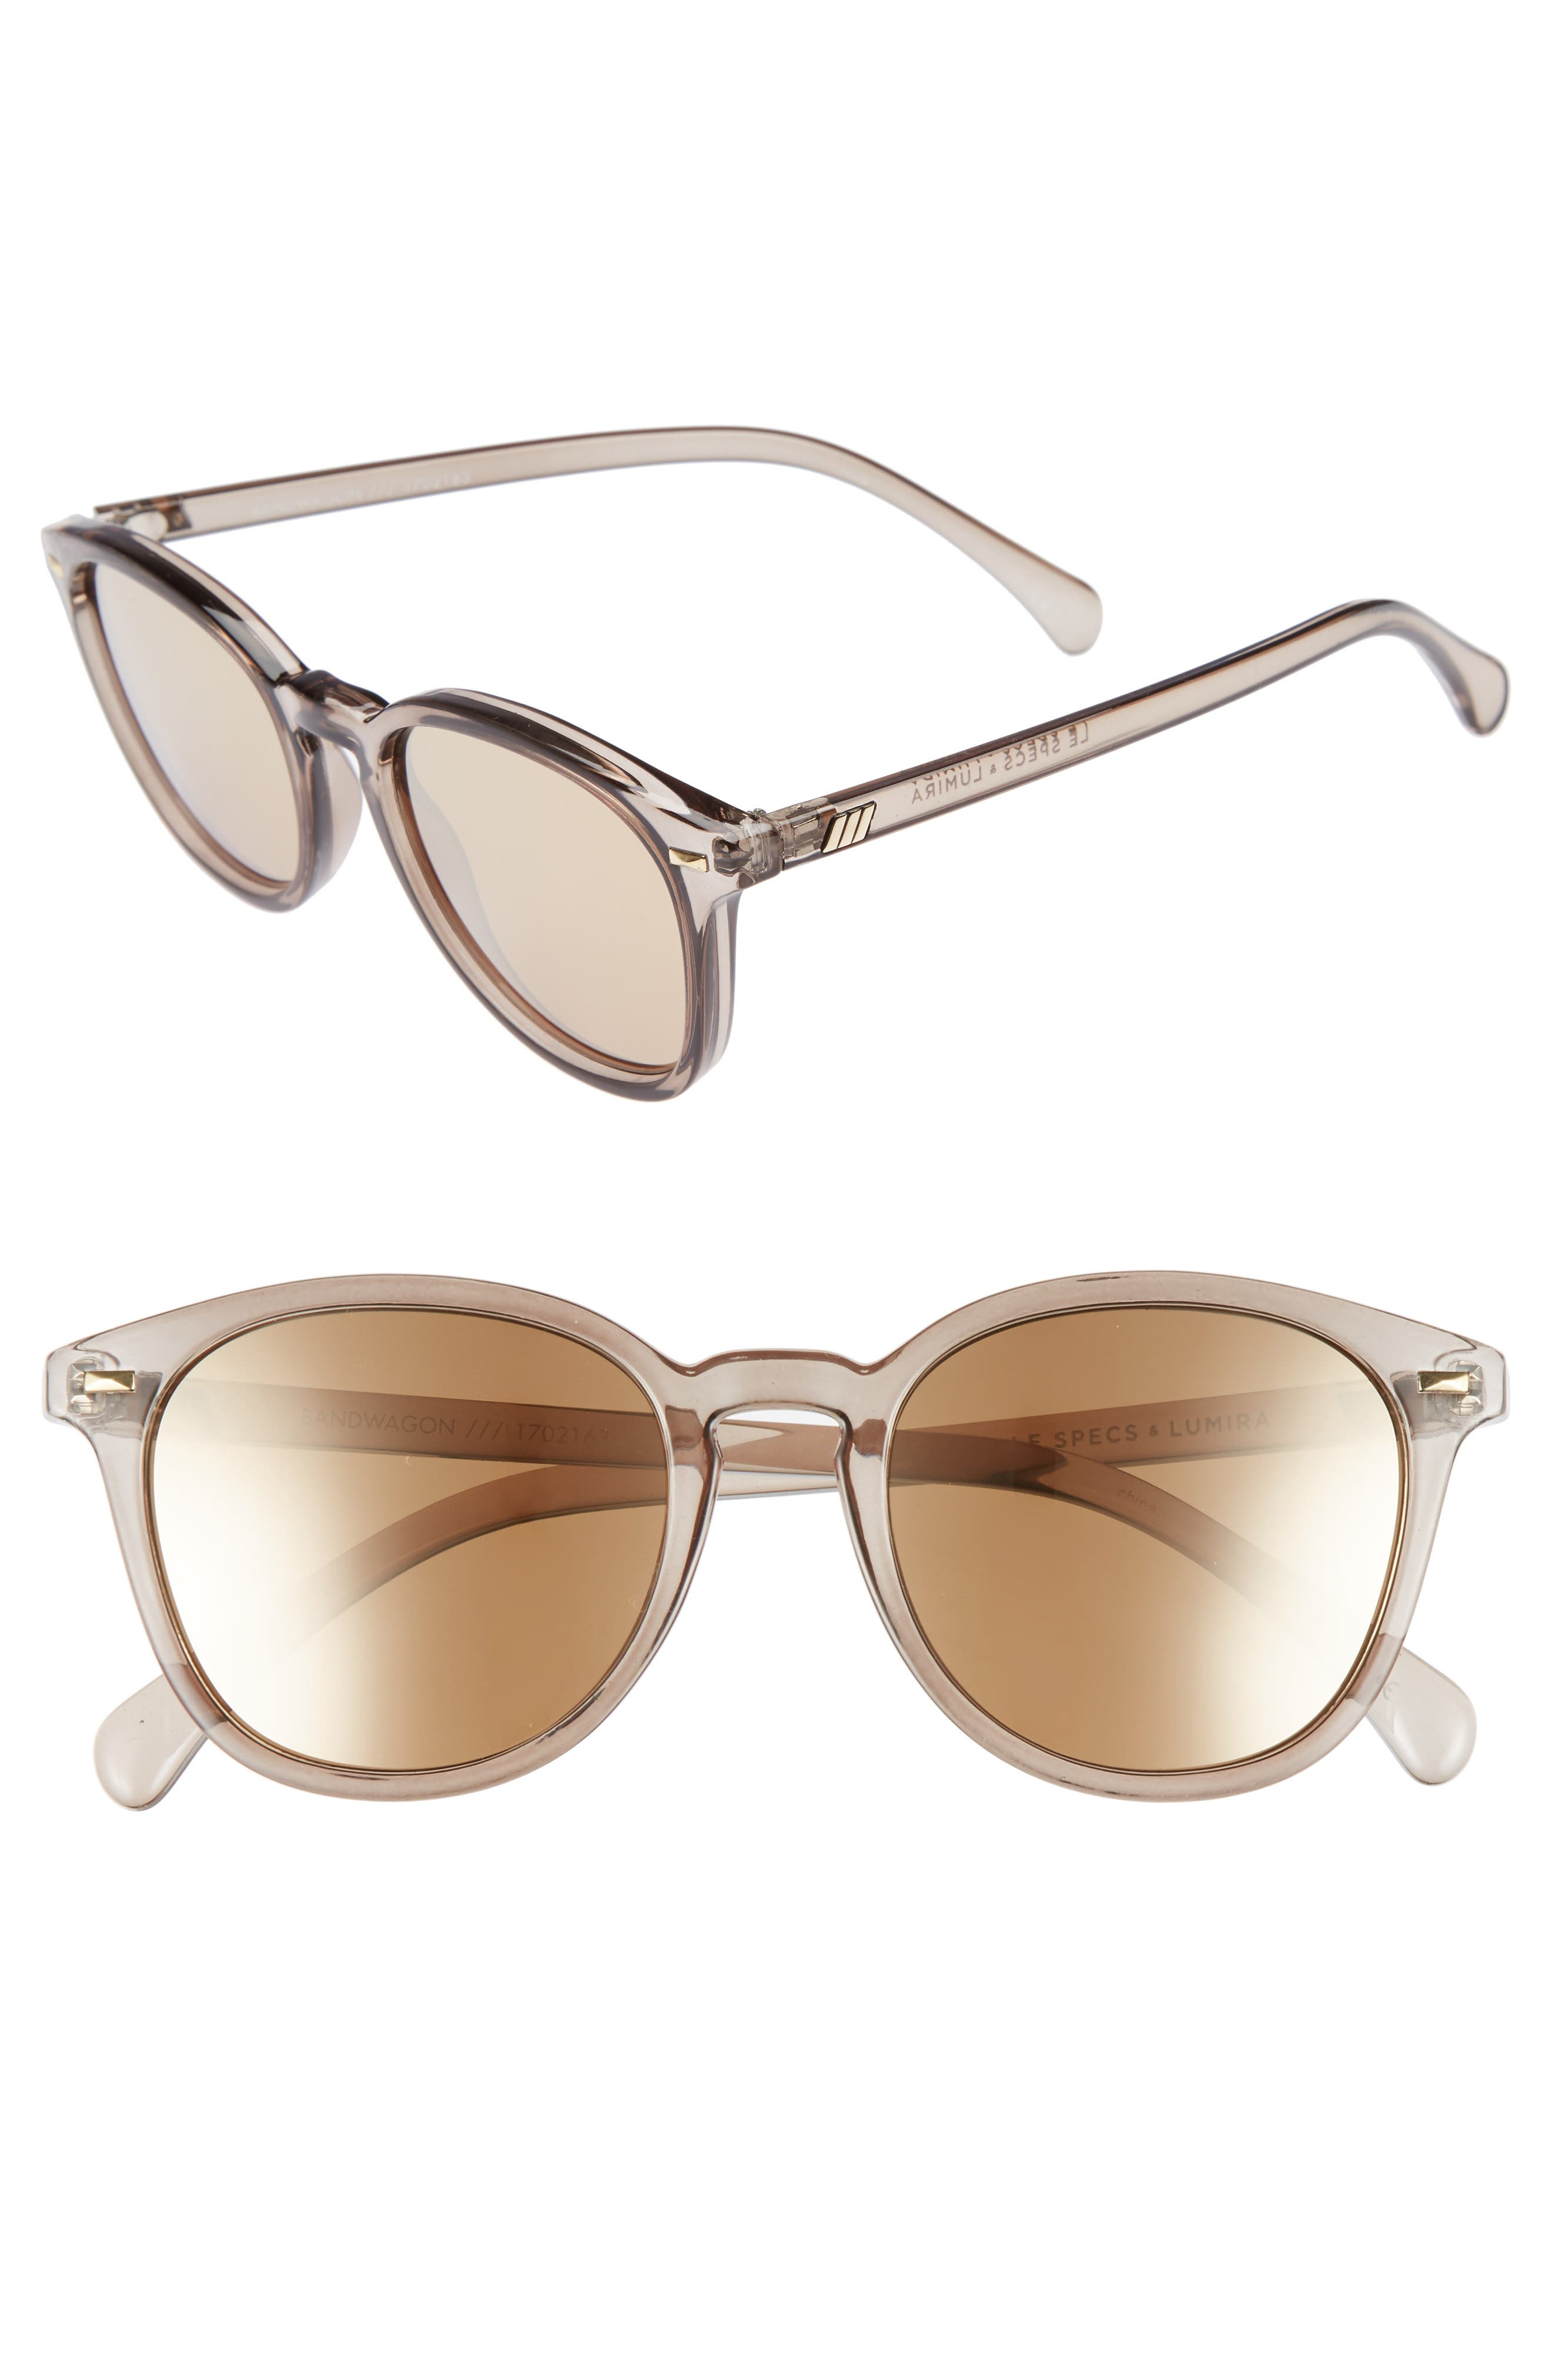 x Lumira Bandwagon 51mm Sunglasses & Candle Gift Set,                             Main thumbnail 1, color,                             Mist Copper